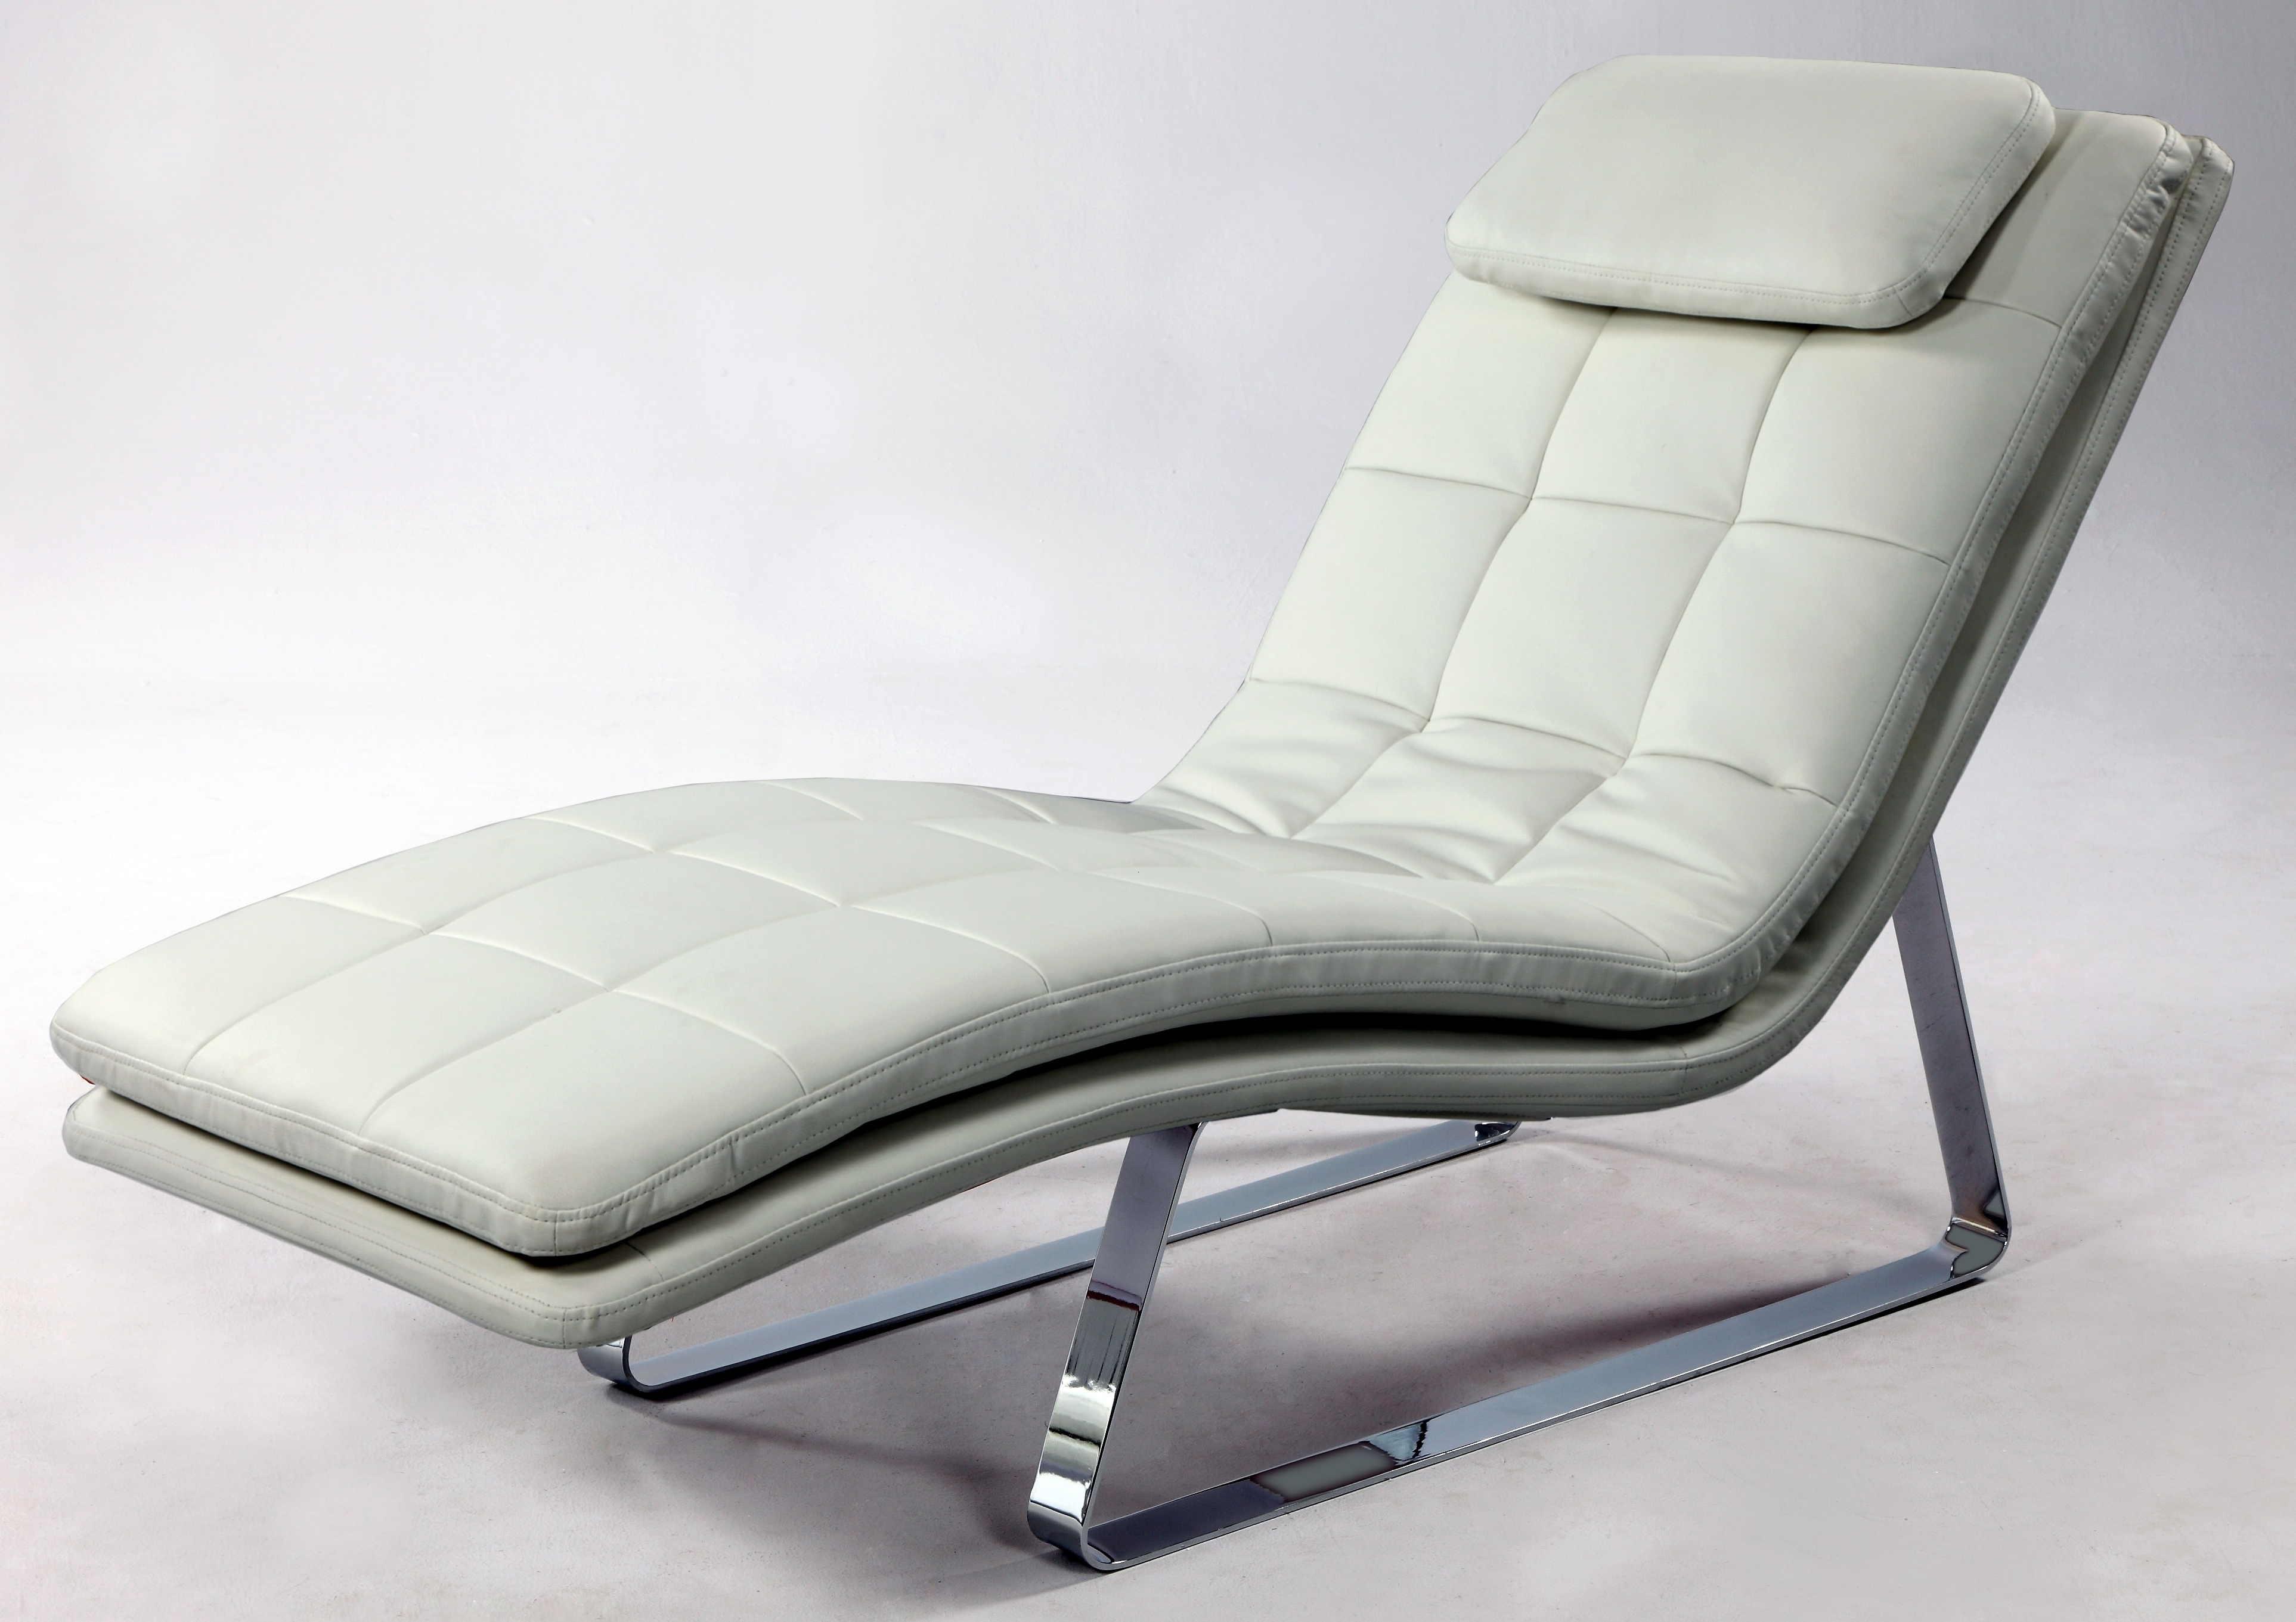 Full Bonded Leather Tufted Chaise Lounge With Chrome Legs New York With Preferred Leather Chaises (View 5 of 15)